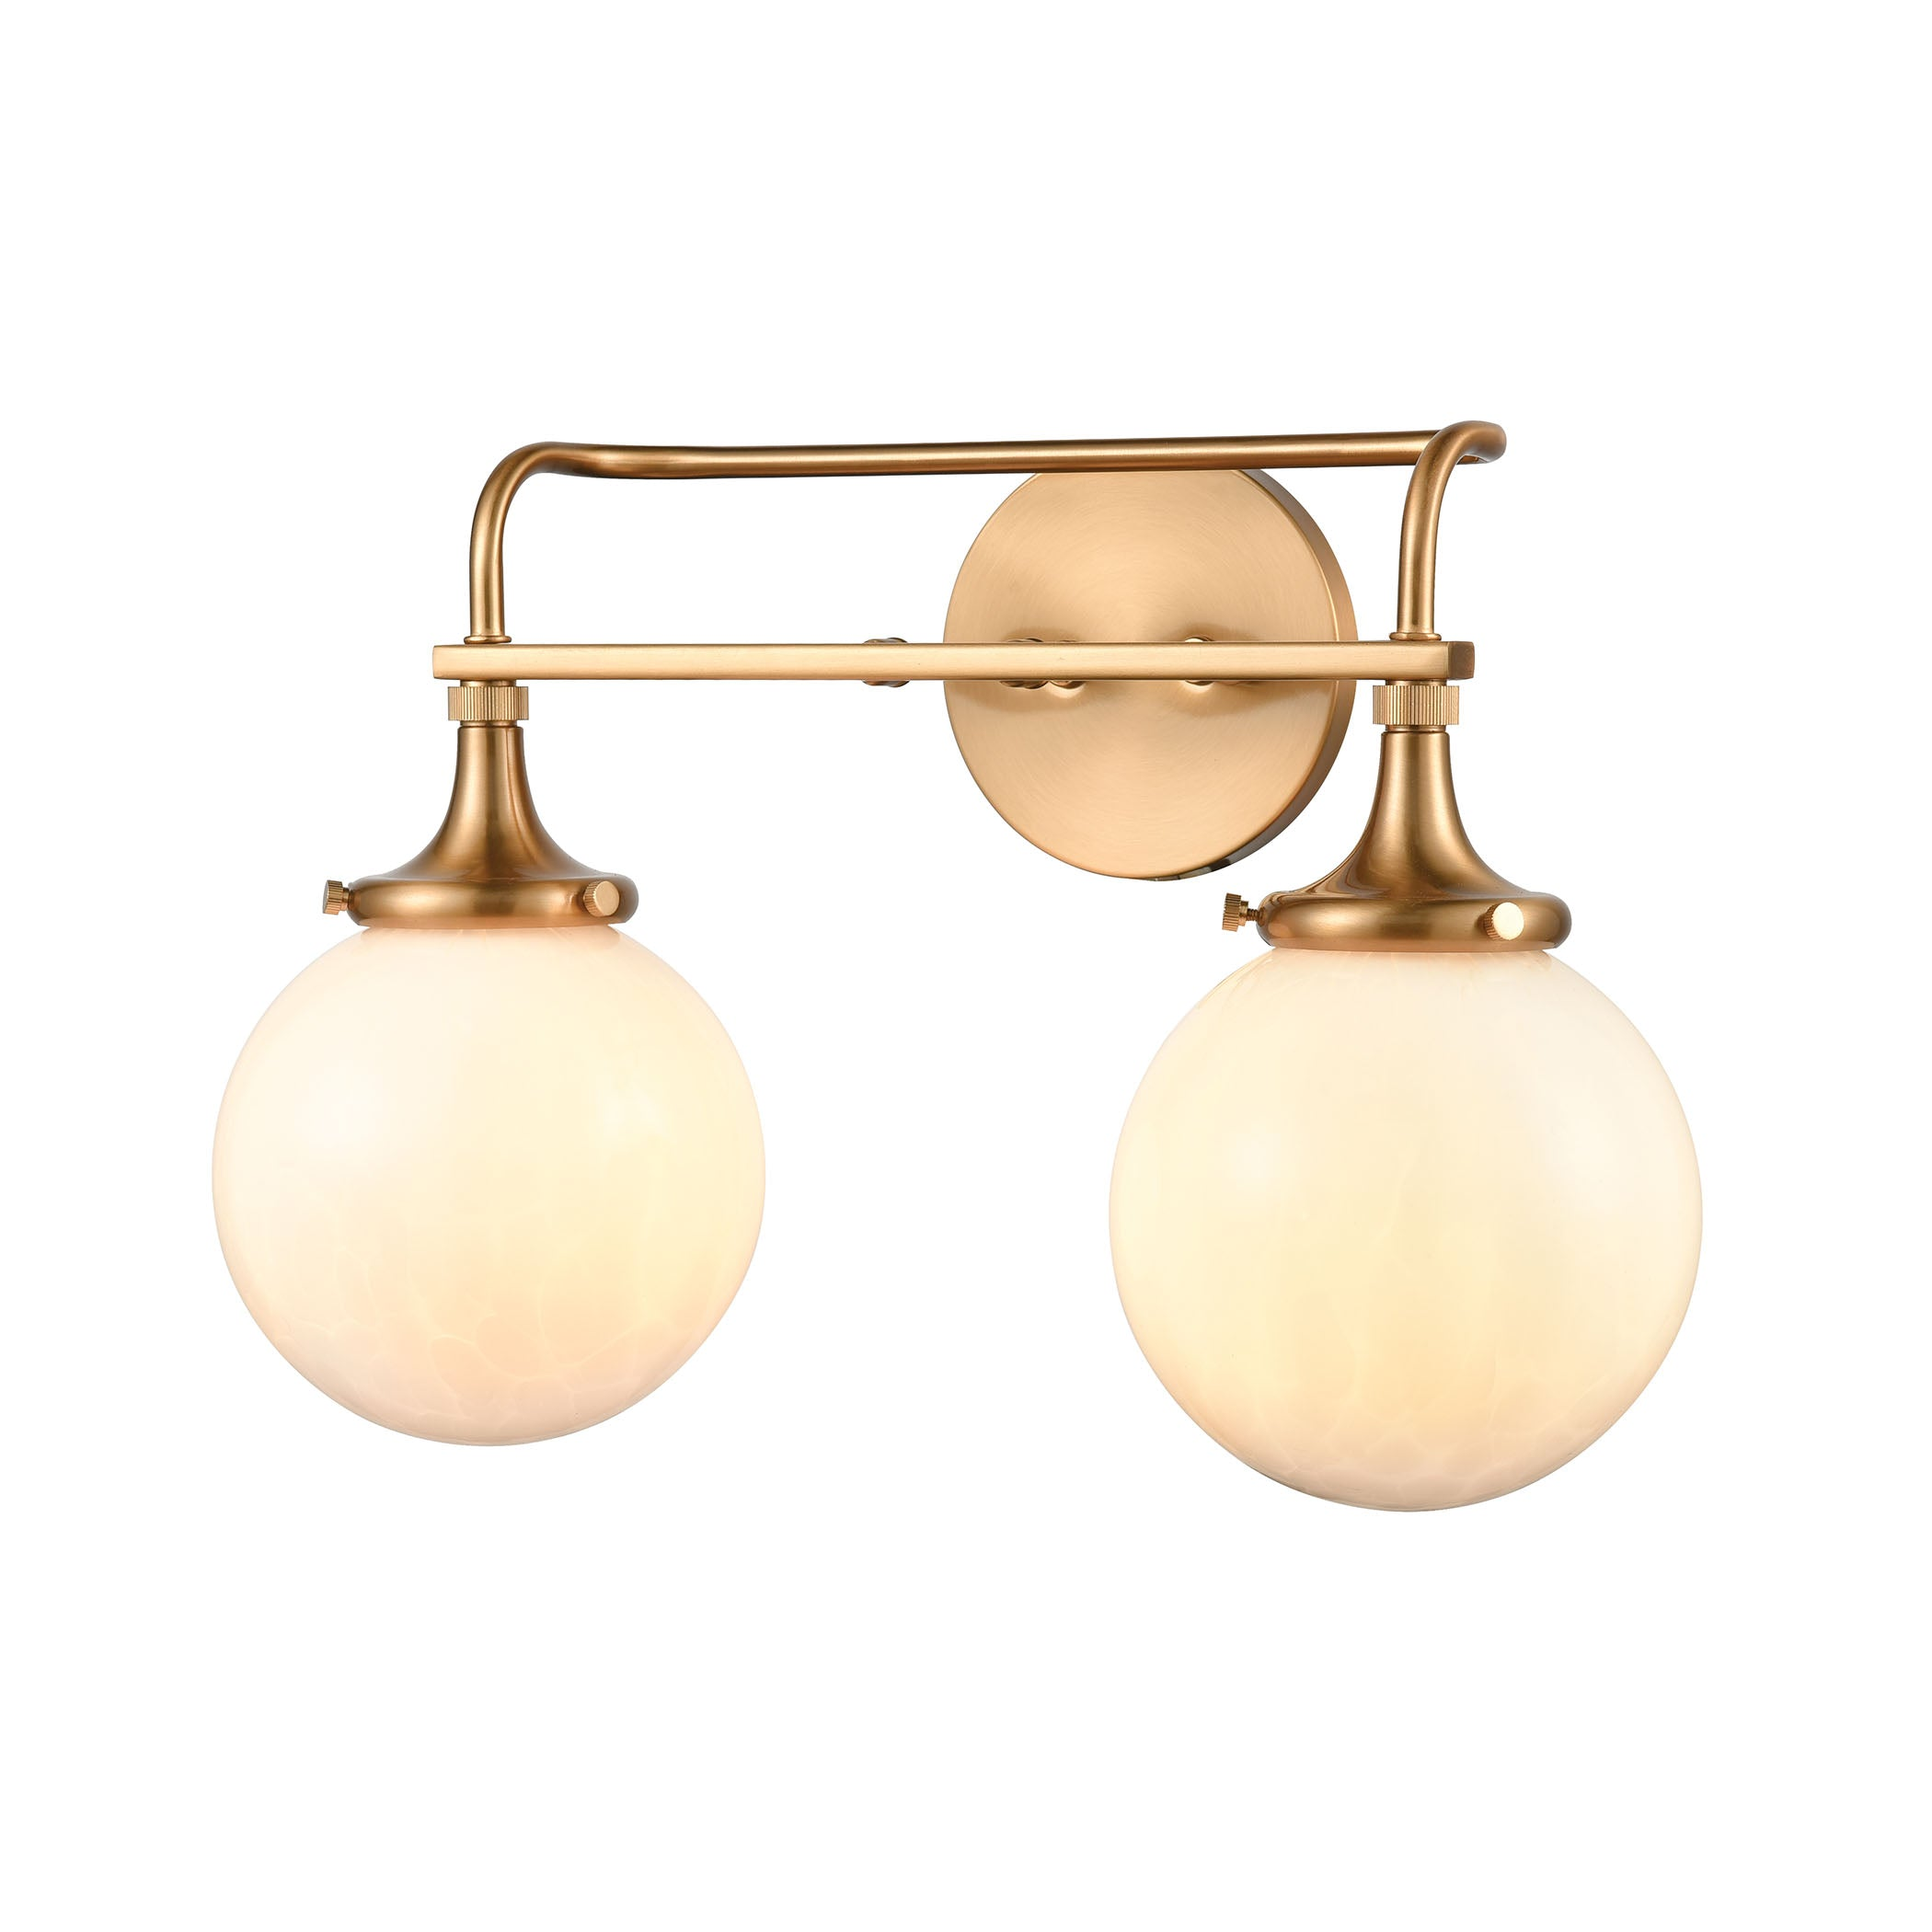 Beverly Hills 2 Light Vanity Light In Satin Brass With White Feathered Burke Decor